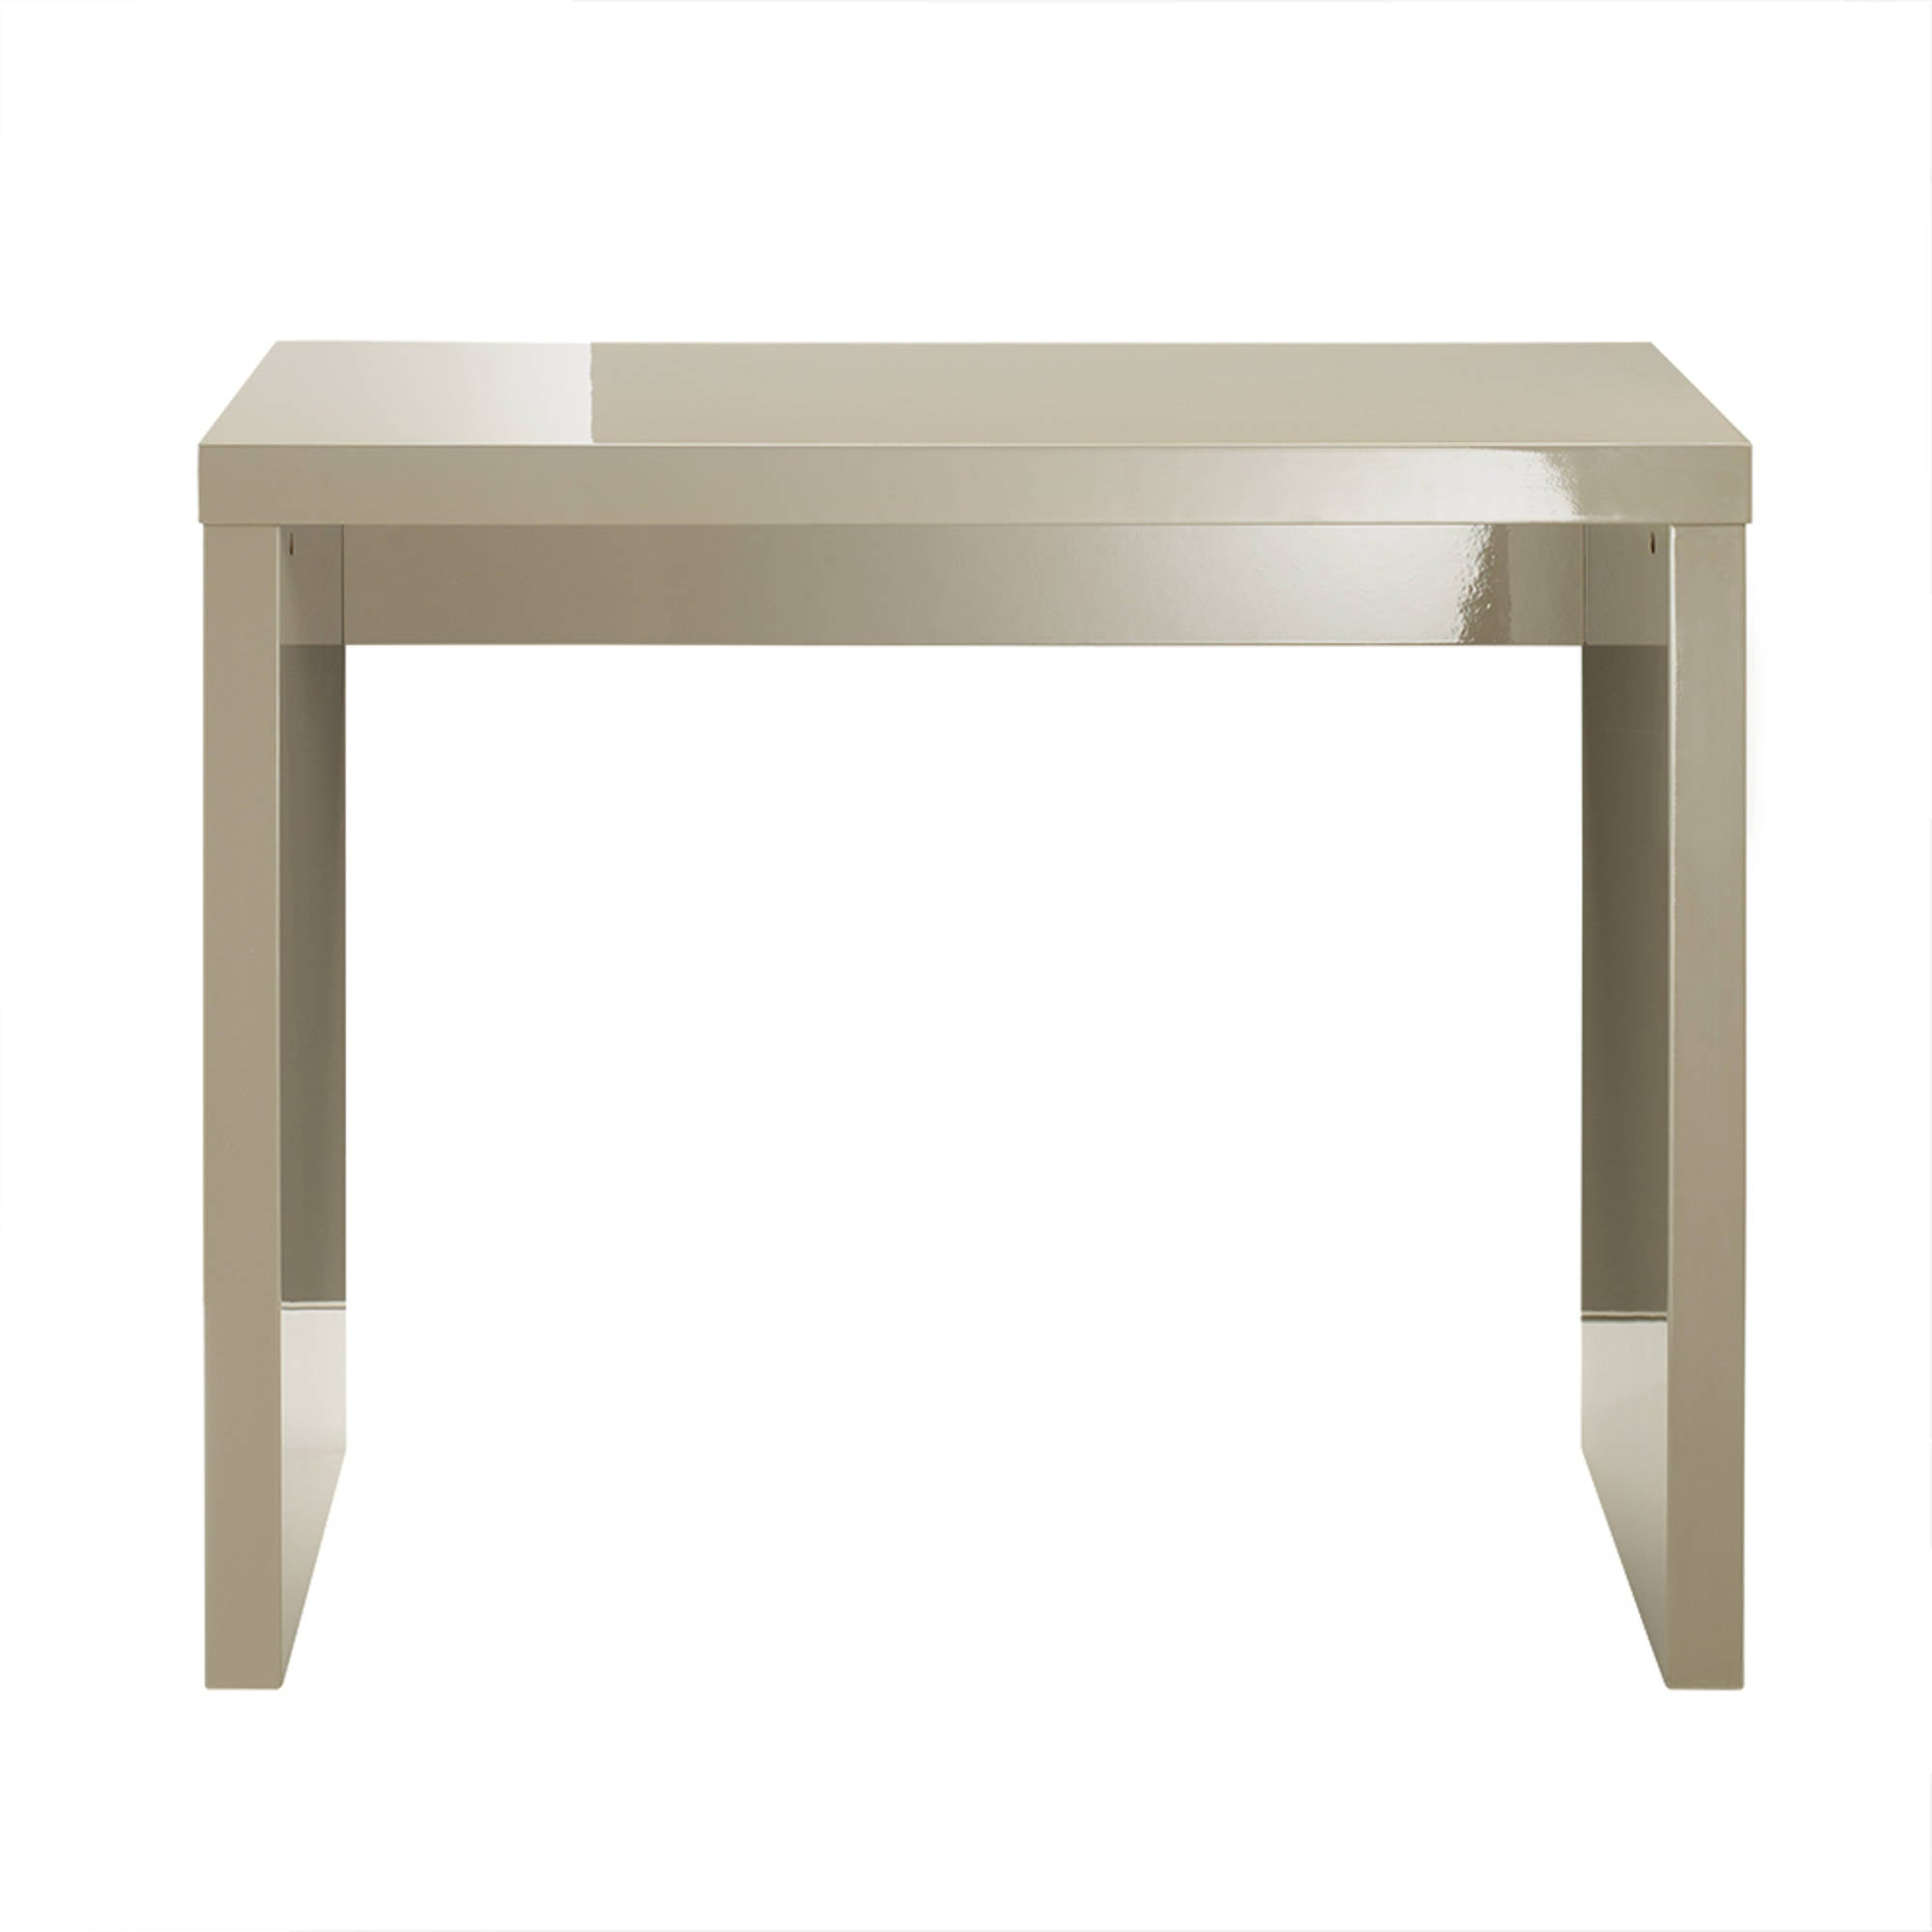 Sterling Small Dining Table in Stone - Ezzo